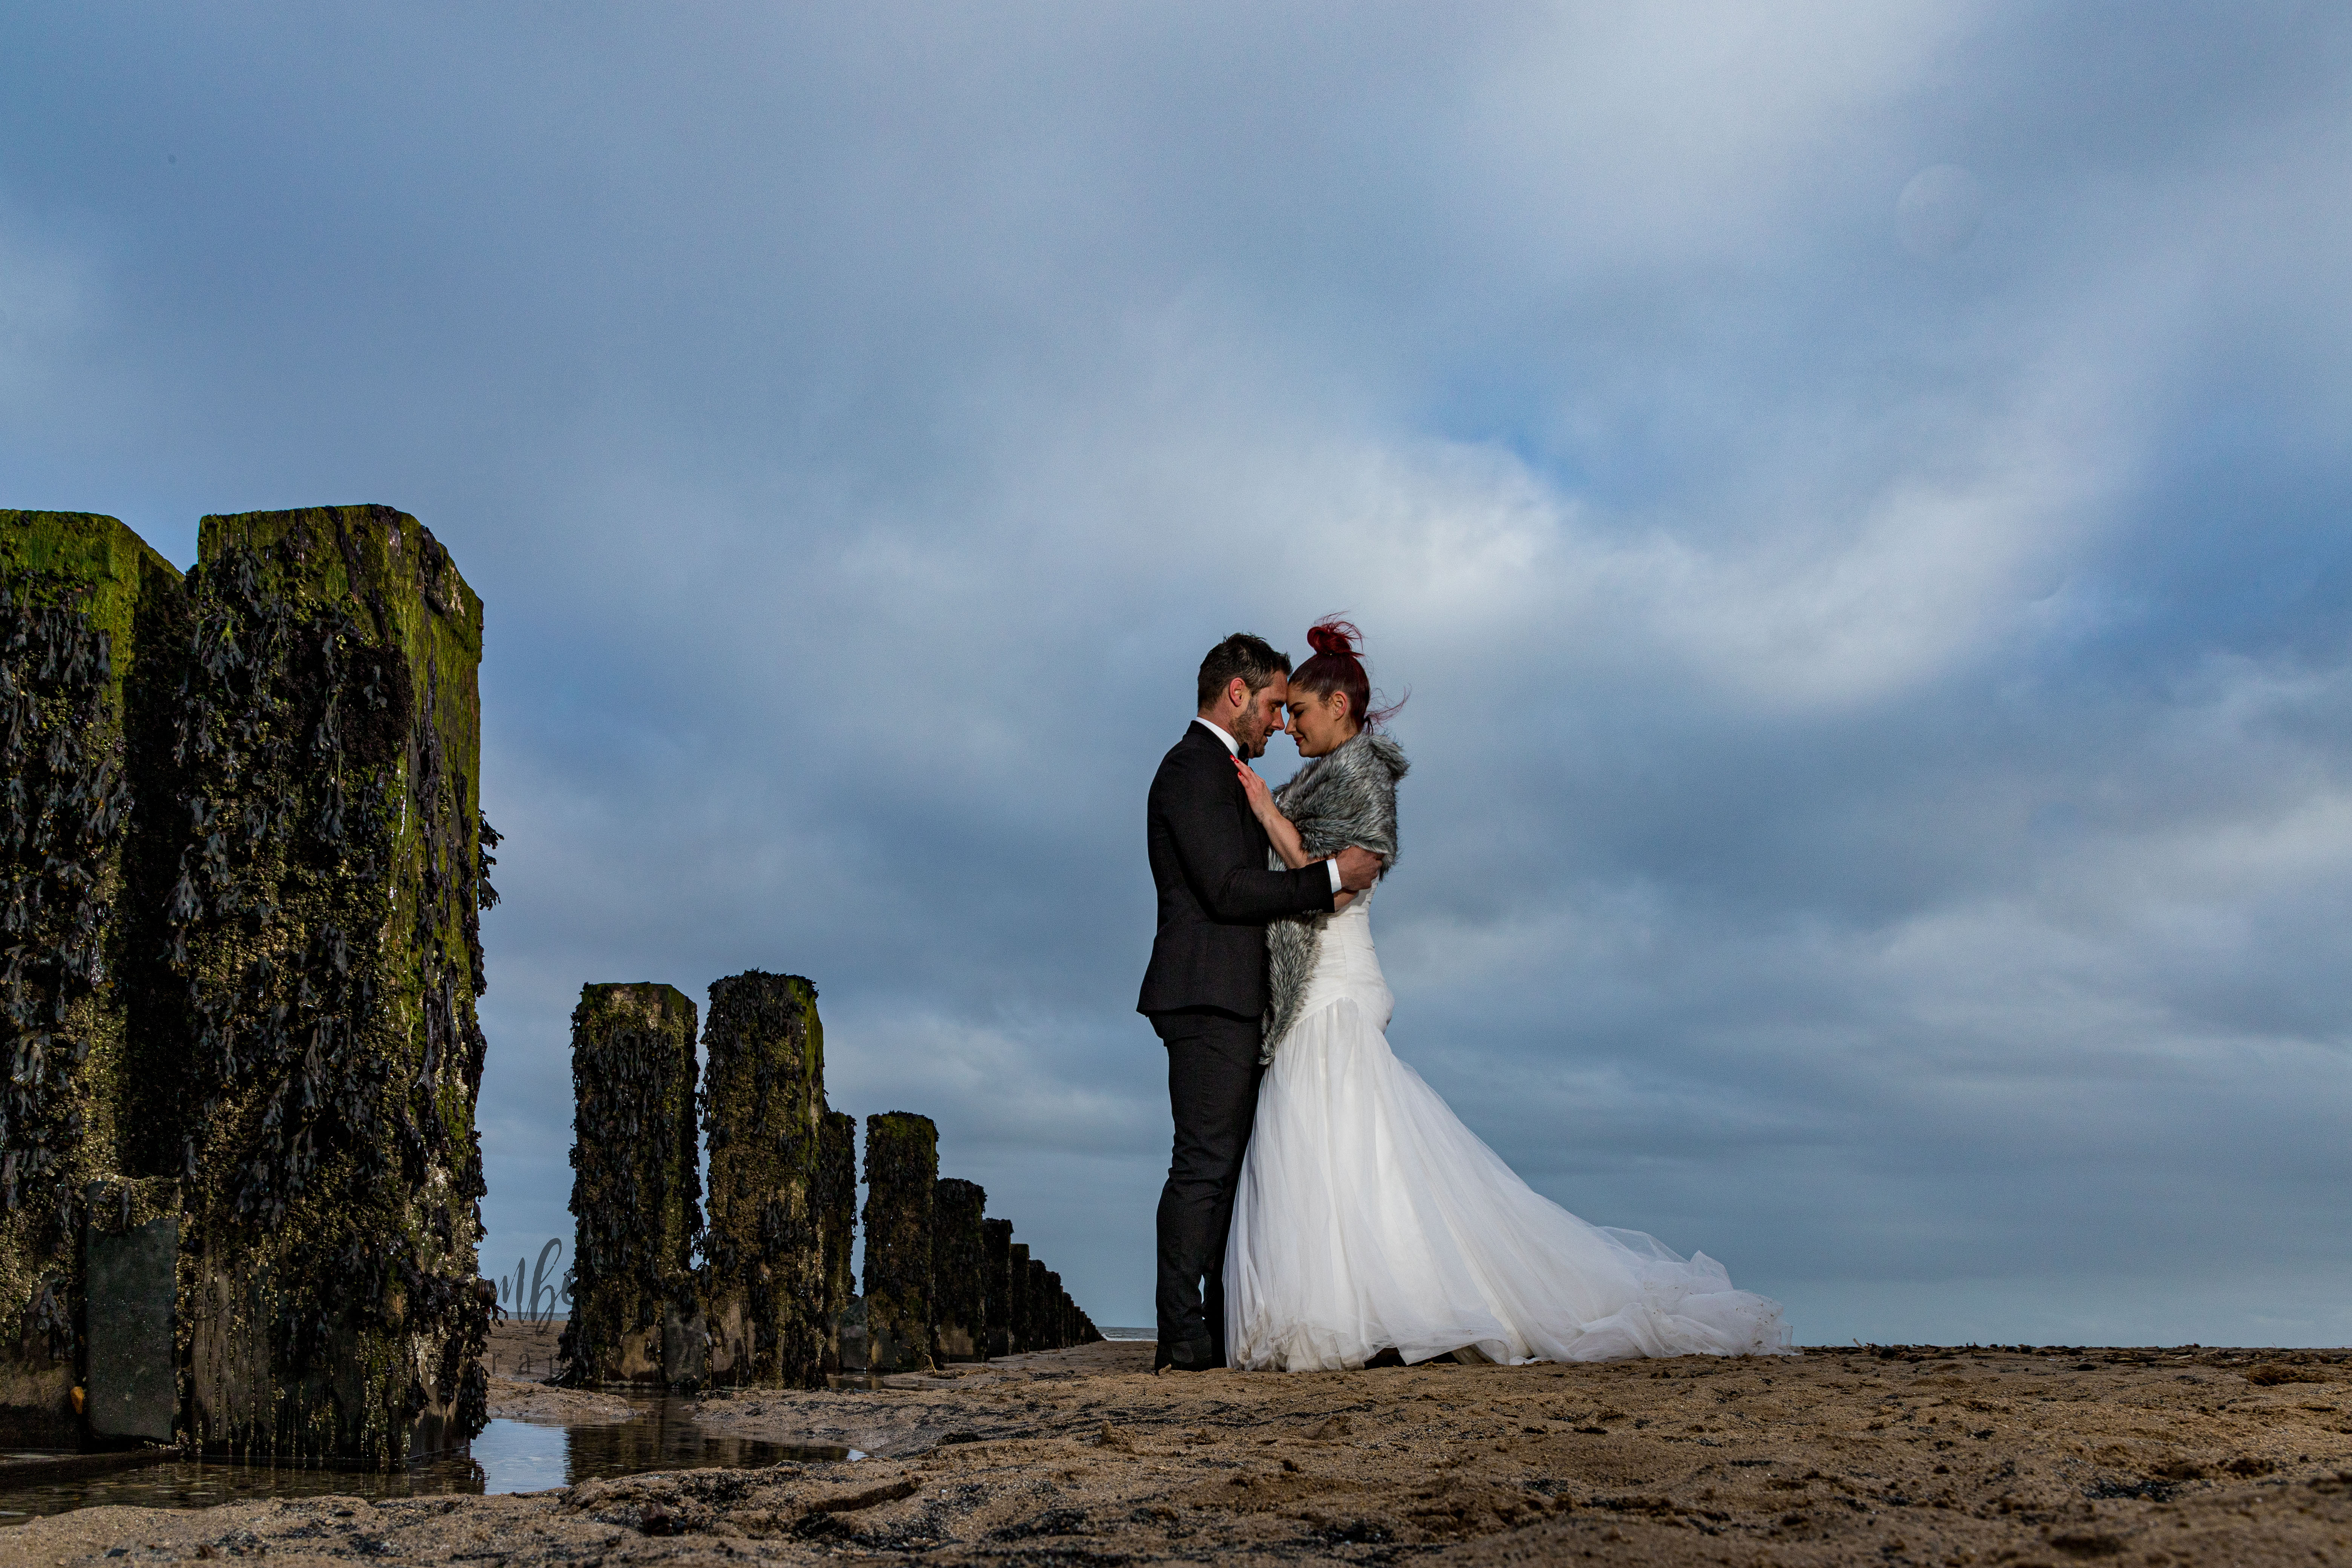 Bride and Groom embrace on beach. Blue sky with fluffy clouds.